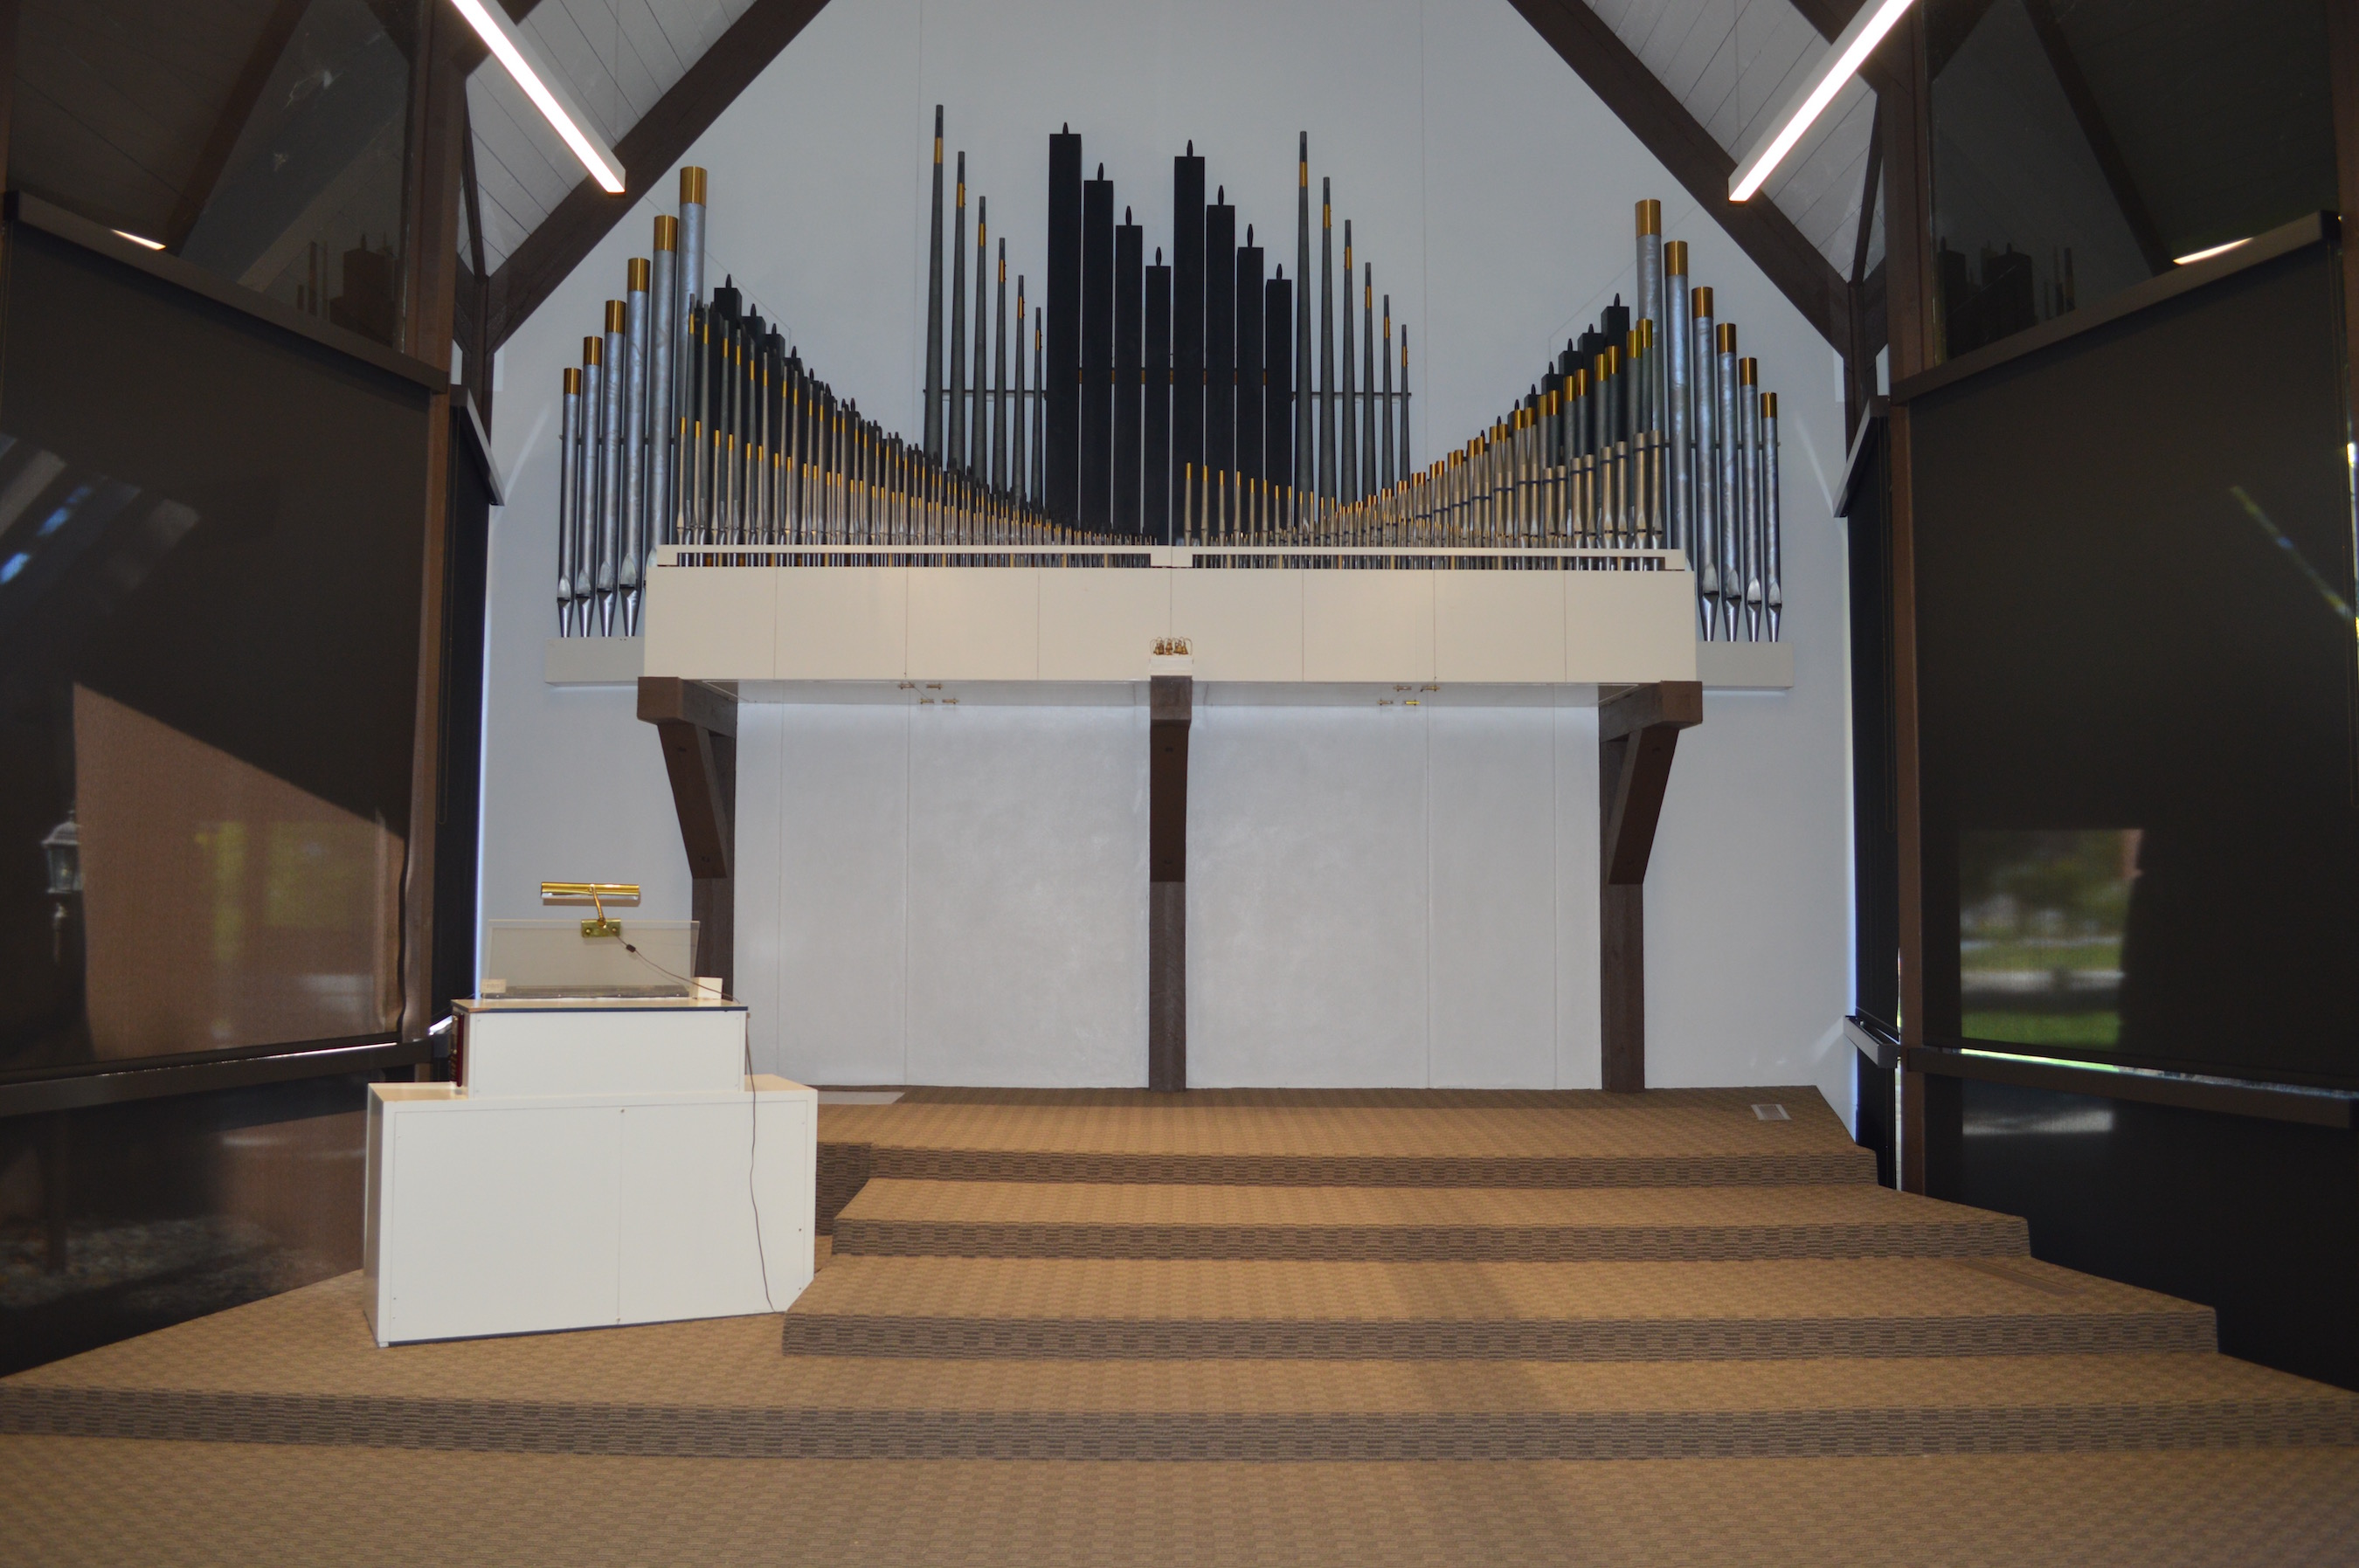 state-hospital-chapel-north-view-organ-3-copy